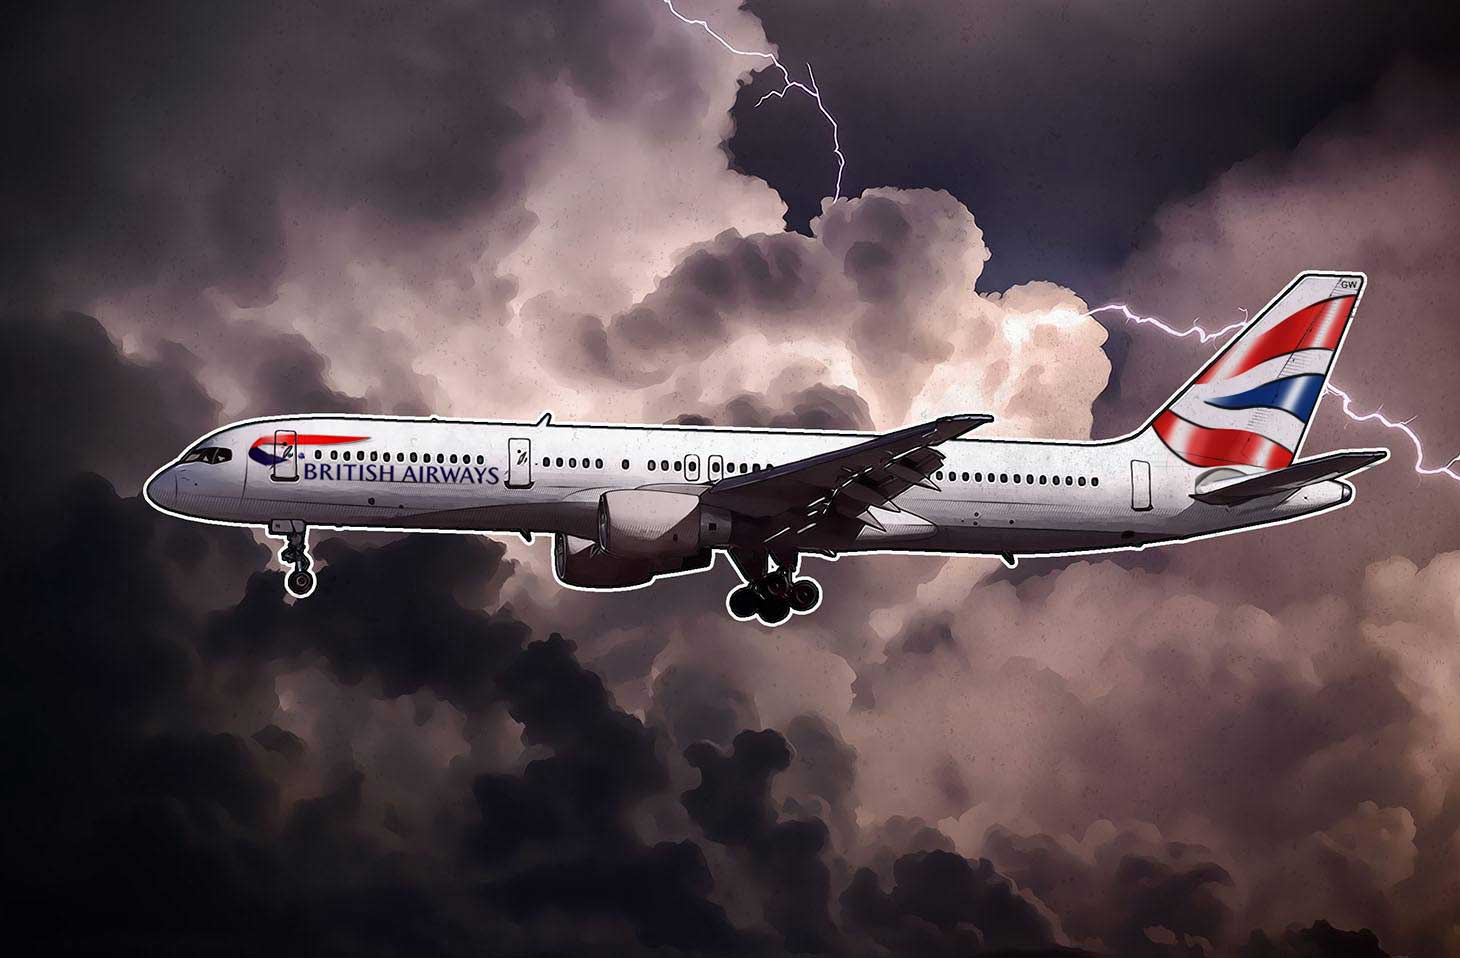 The investigation concluded that British Airways had been attacked by the Magecart cybercrime group.